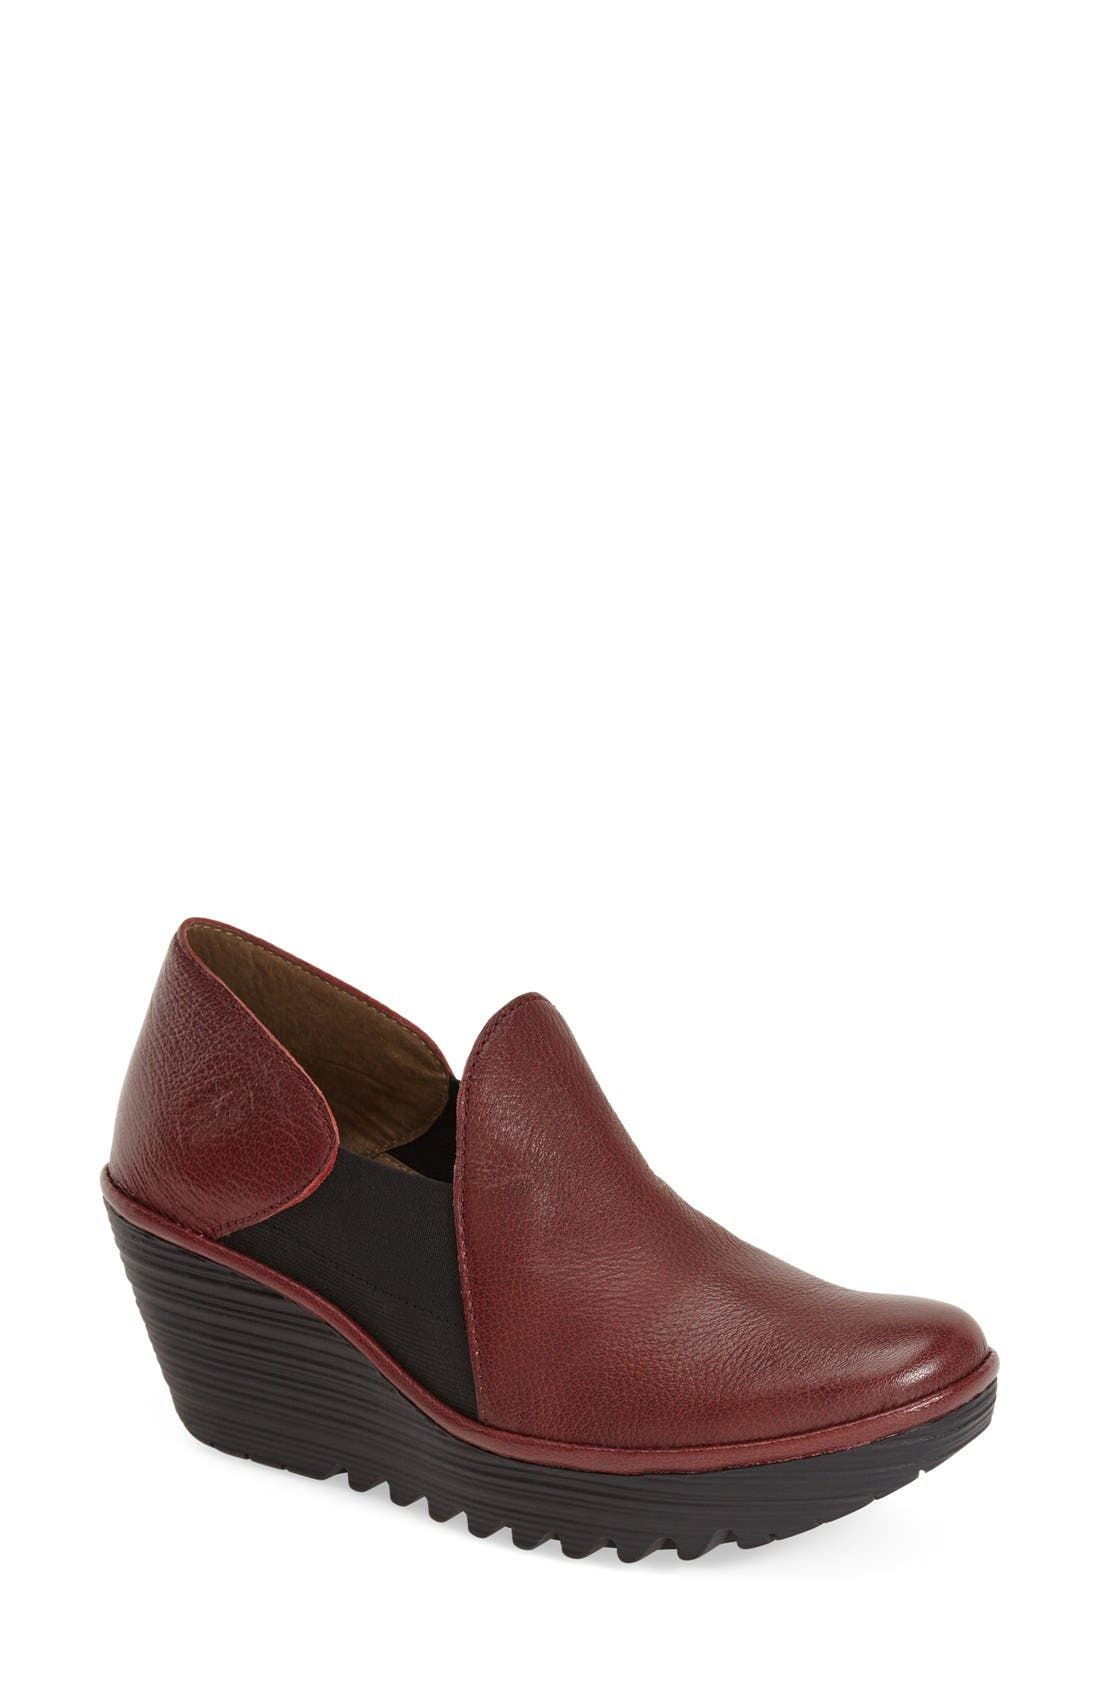 Main Image - Fly London 'Yua' Platform Wedge Pump (Women)